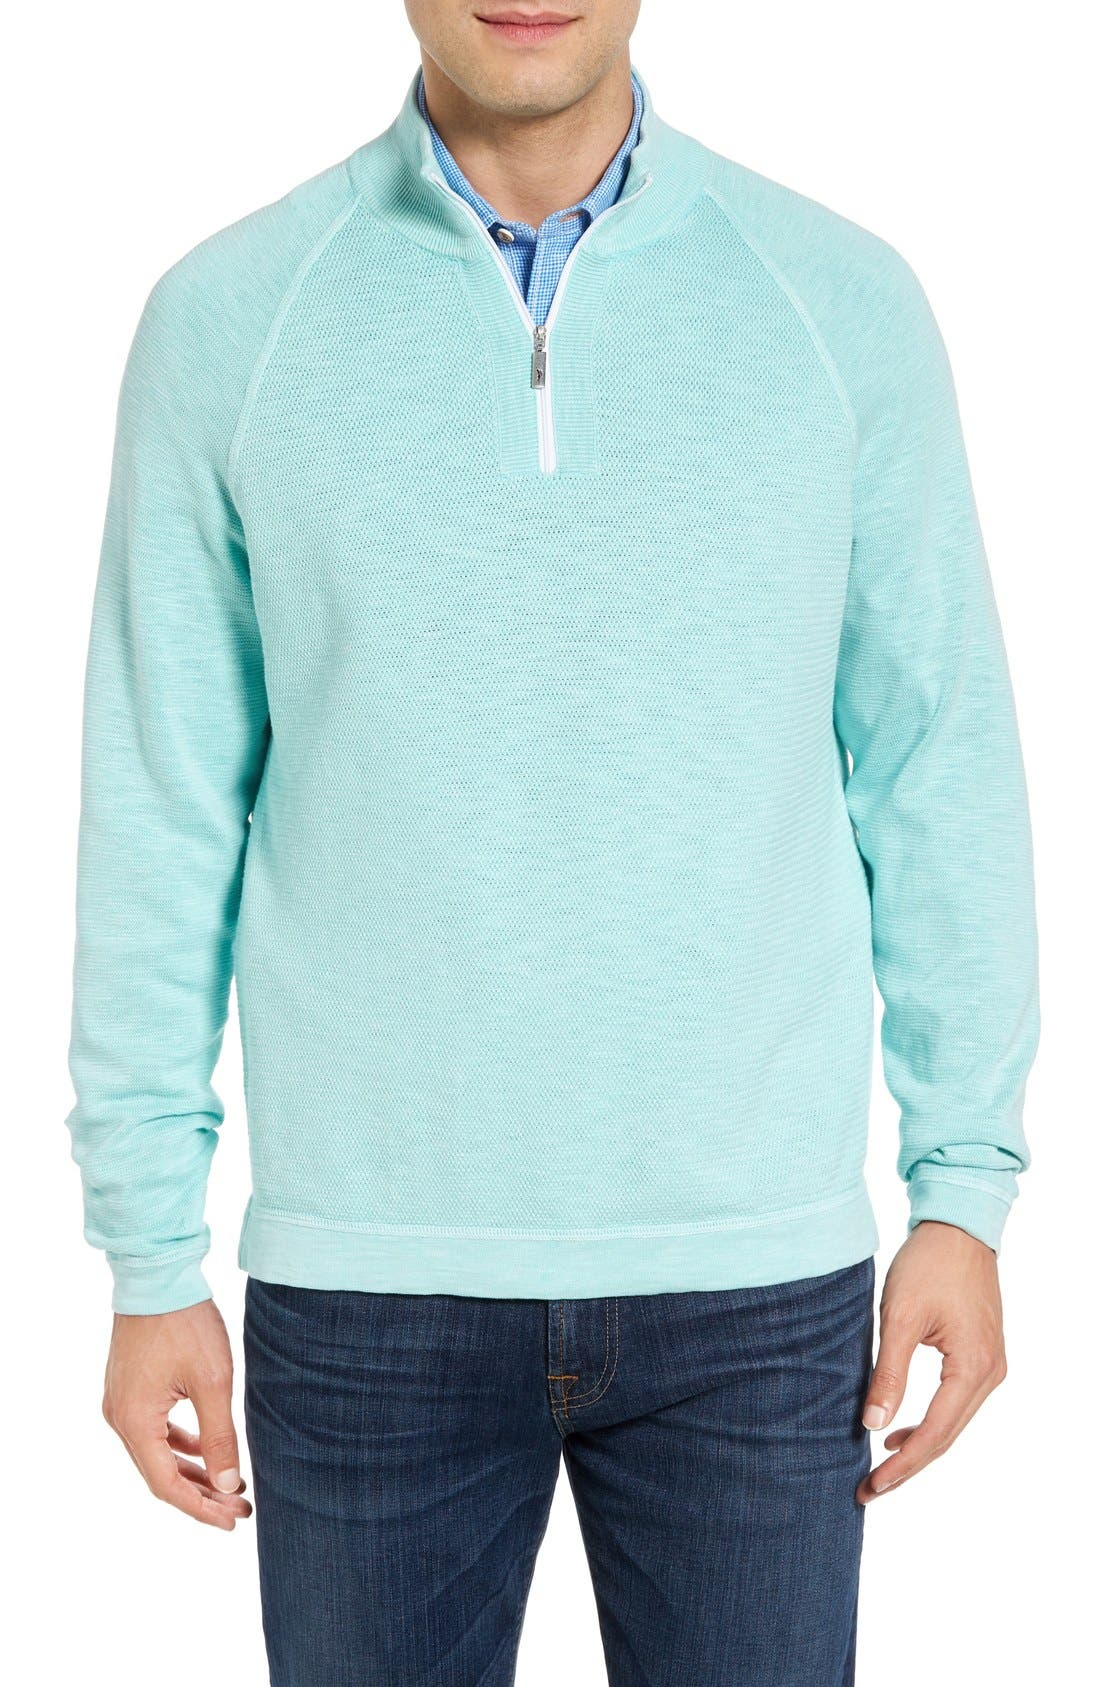 Saltwater Tide Half Zip Pullover,                         Main,                         color, Aquarius